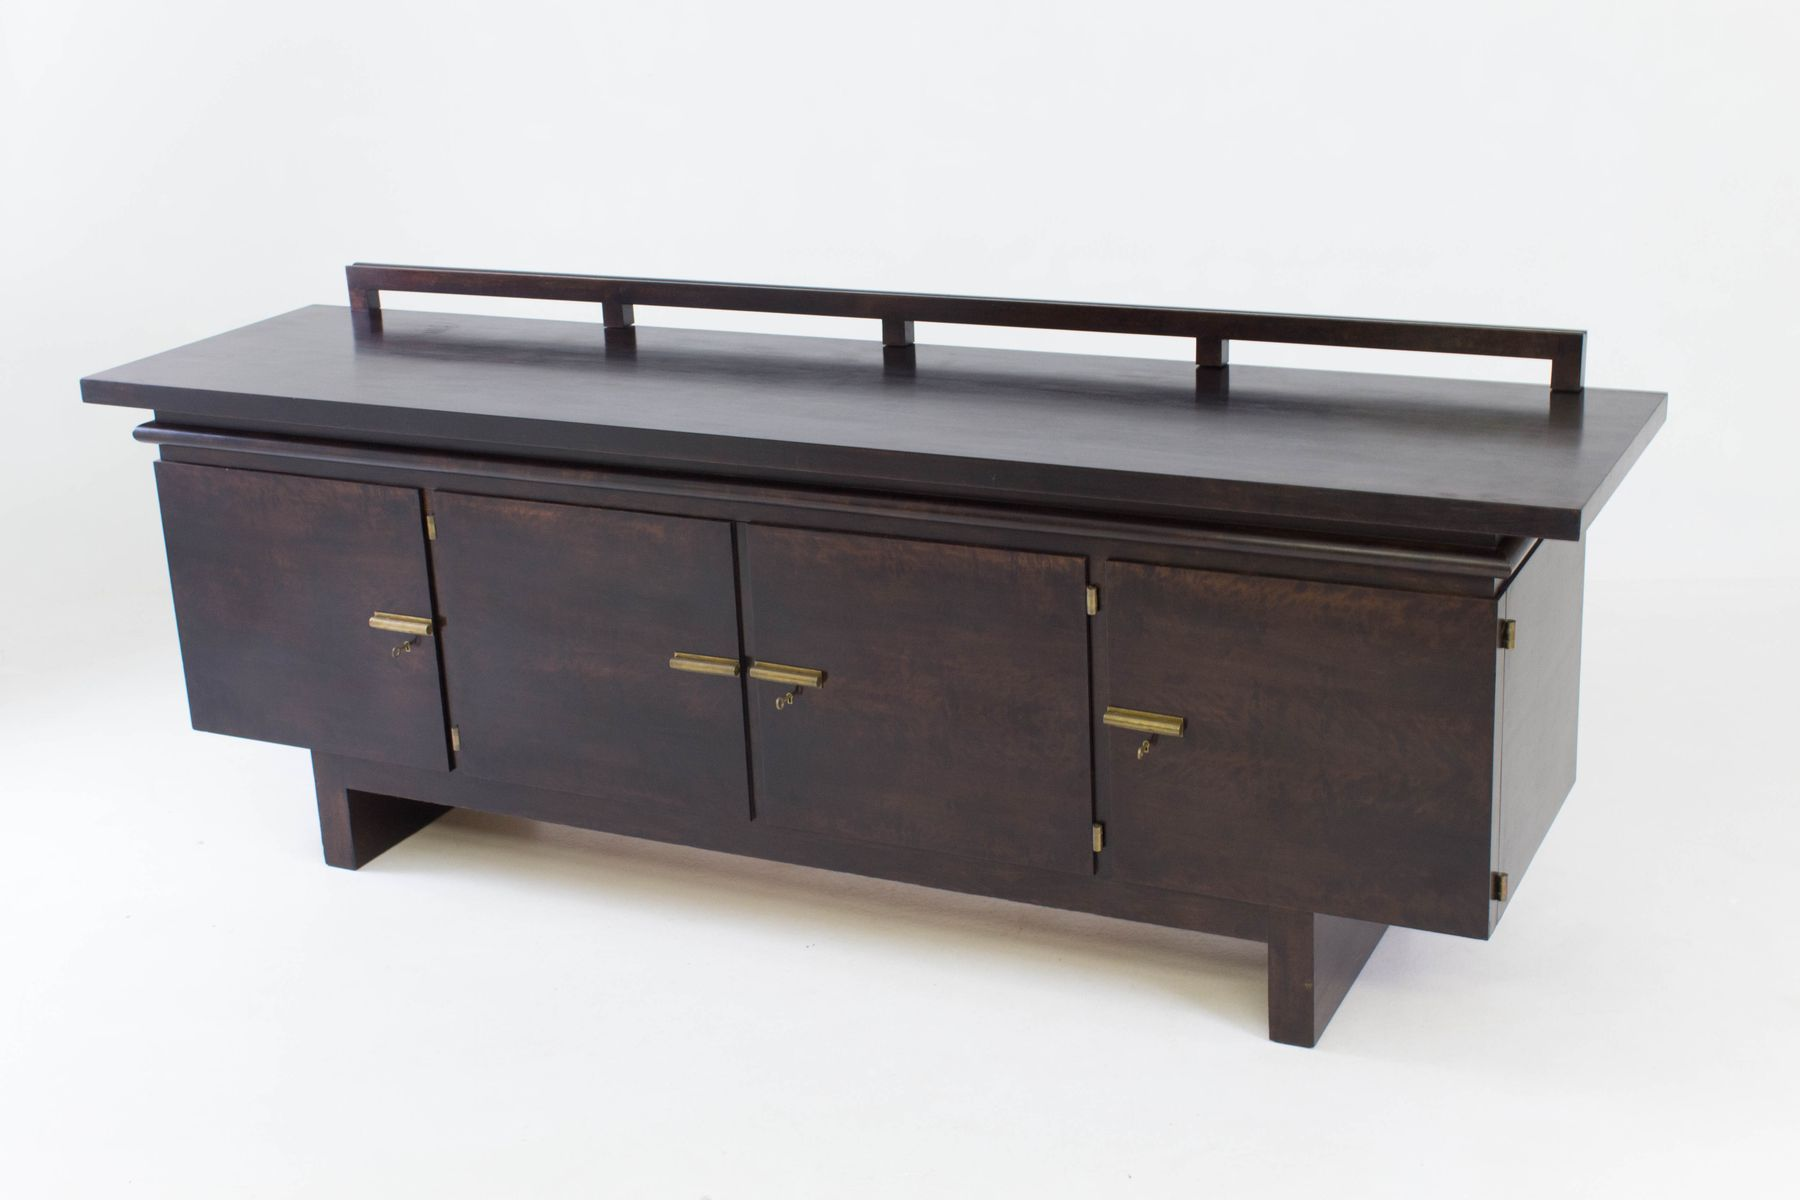 art deco sideboard by bruno paul for berliner zoo. Black Bedroom Furniture Sets. Home Design Ideas